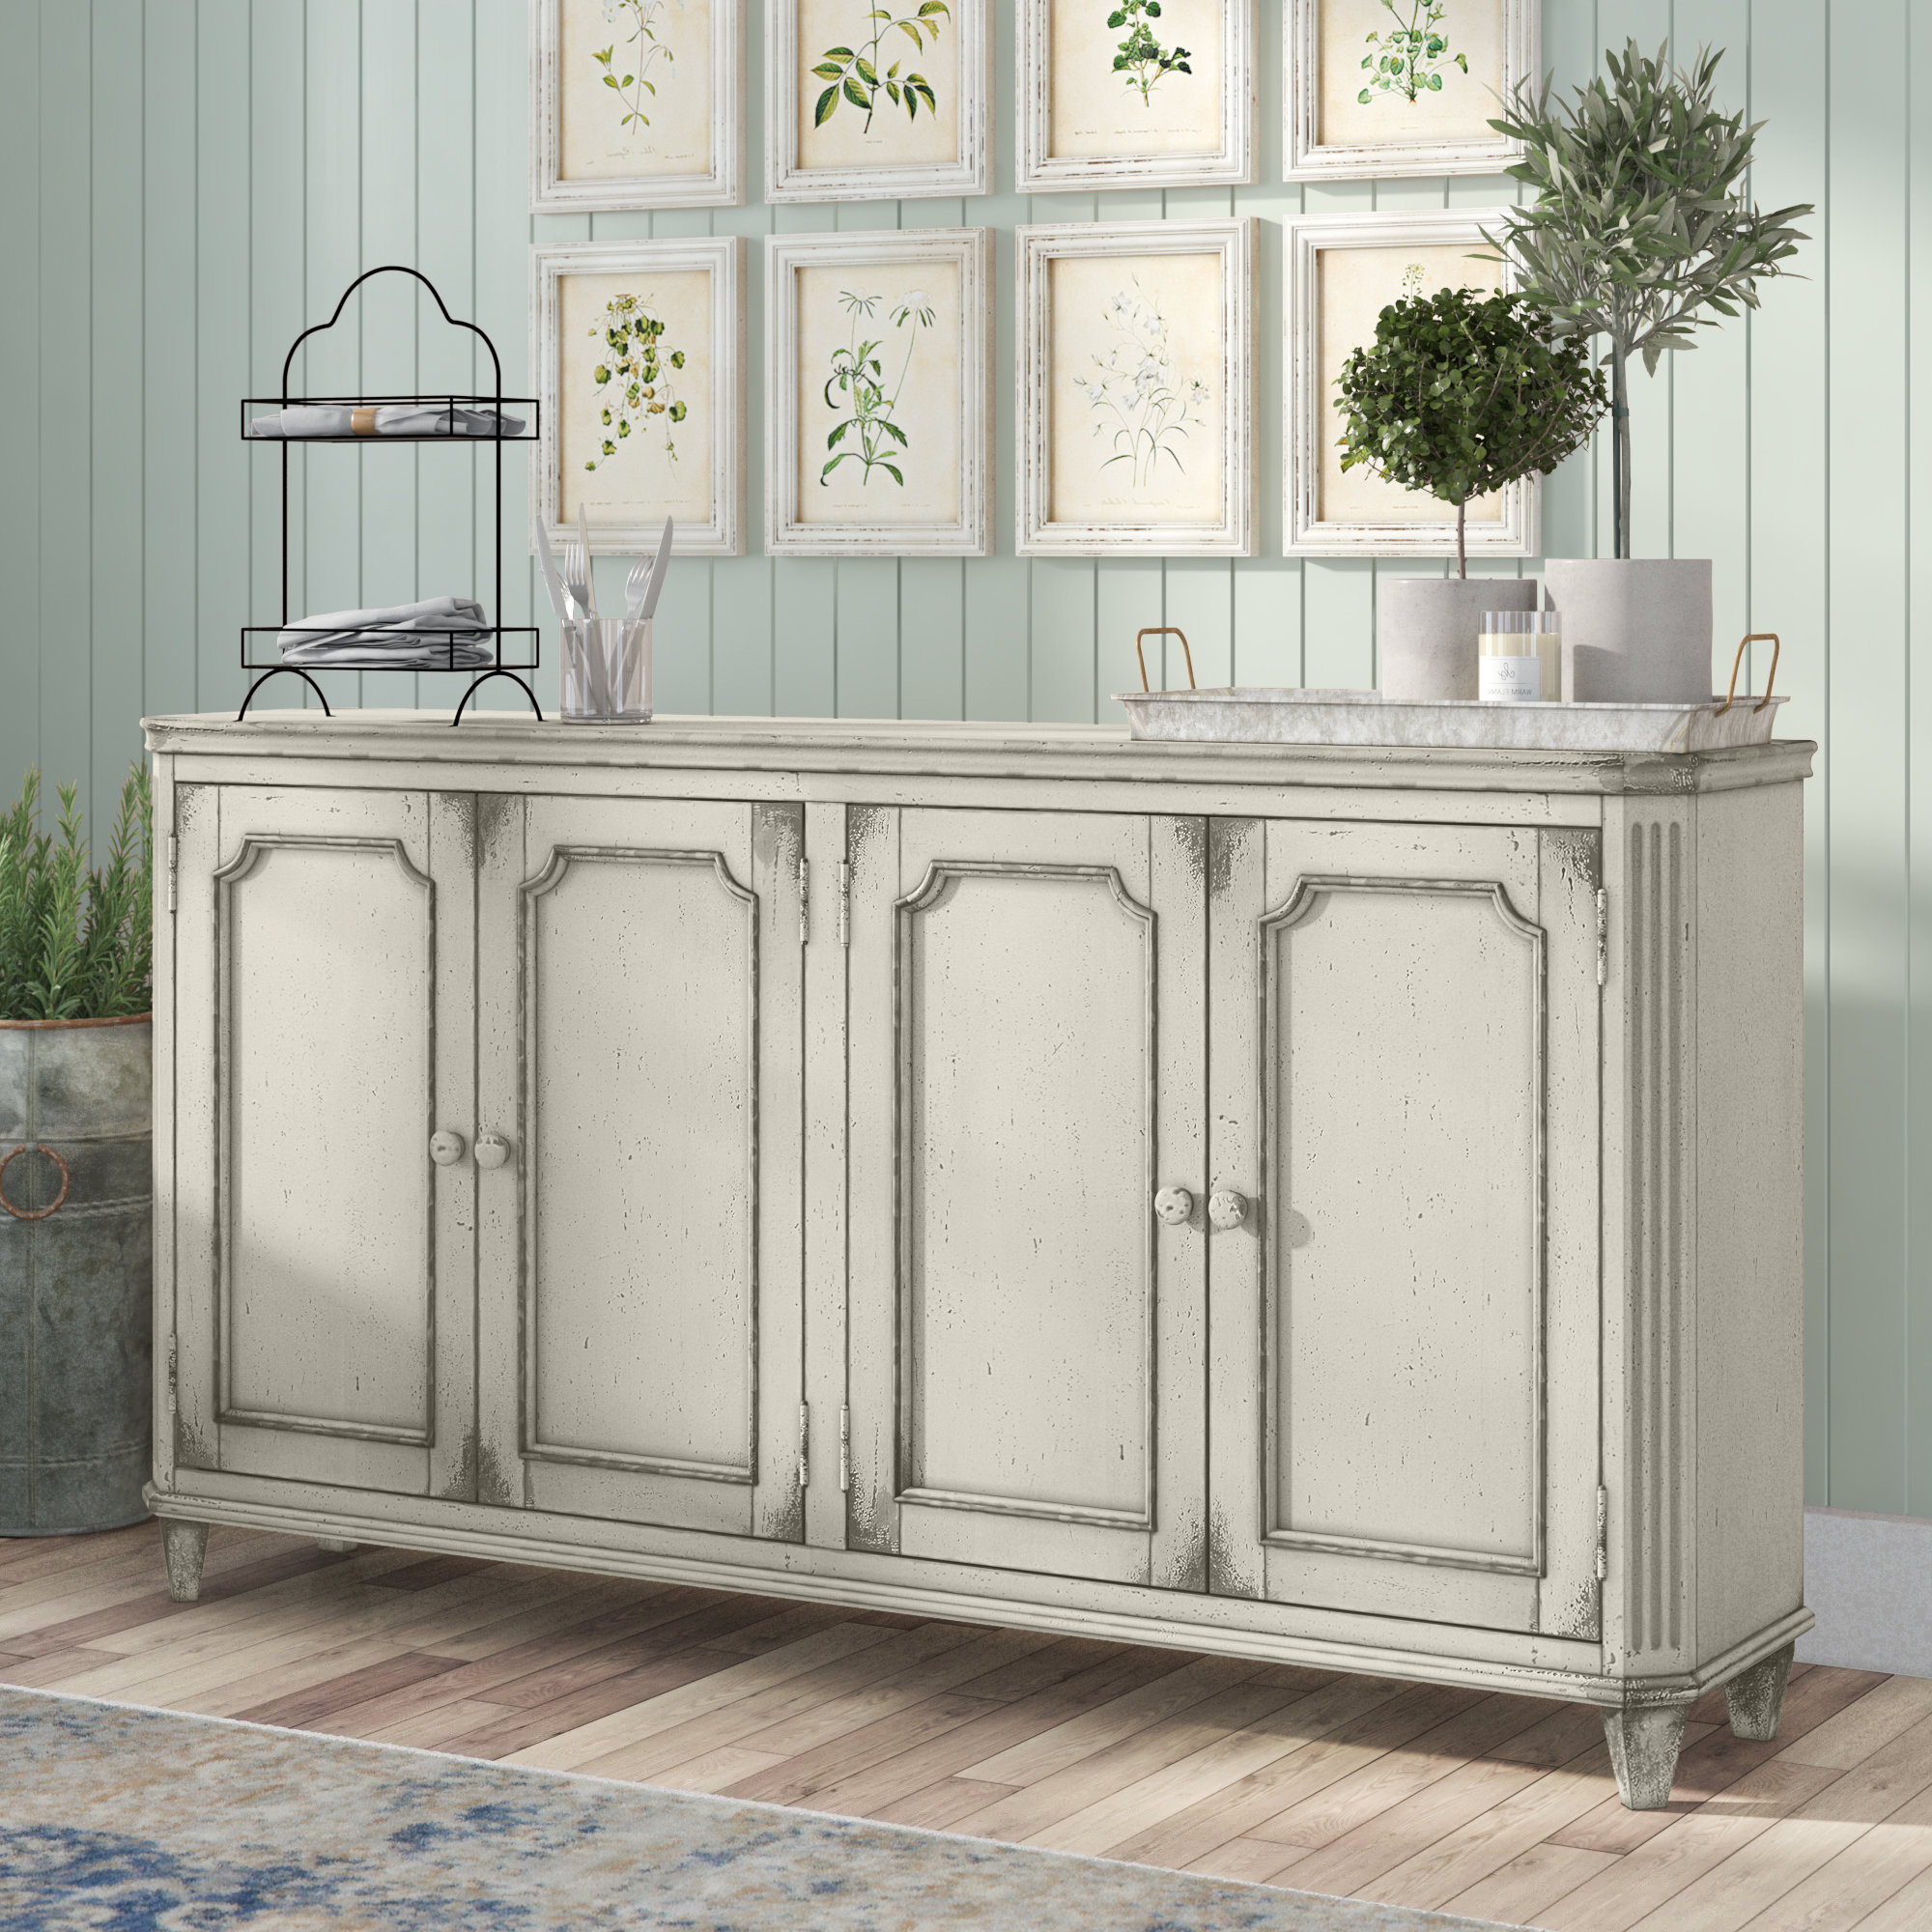 Most Recent Raunds Sideboard Intended For Raunds Sideboards (View 11 of 20)